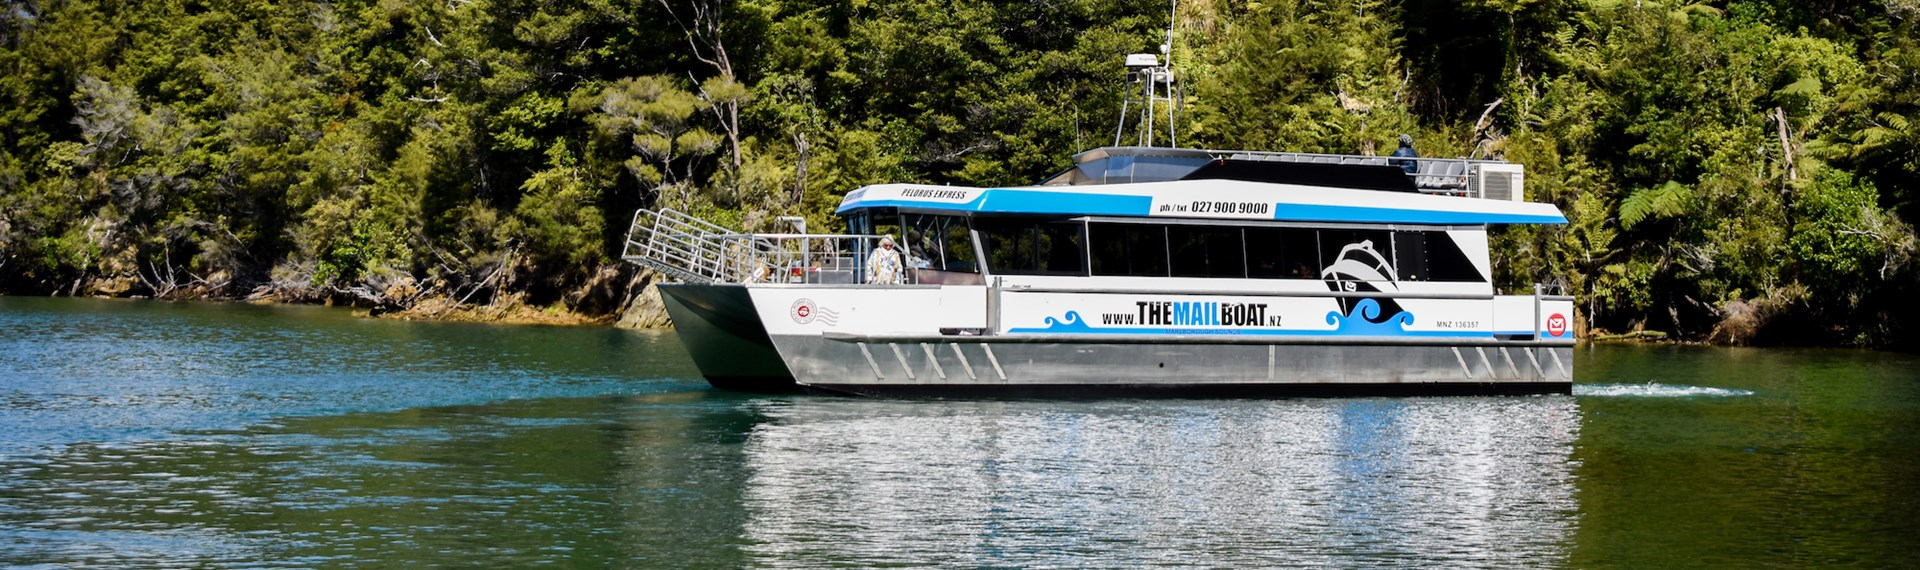 The Pelorus Mail Boat exploring a bay in Pelorus Sound/Te Horiere.